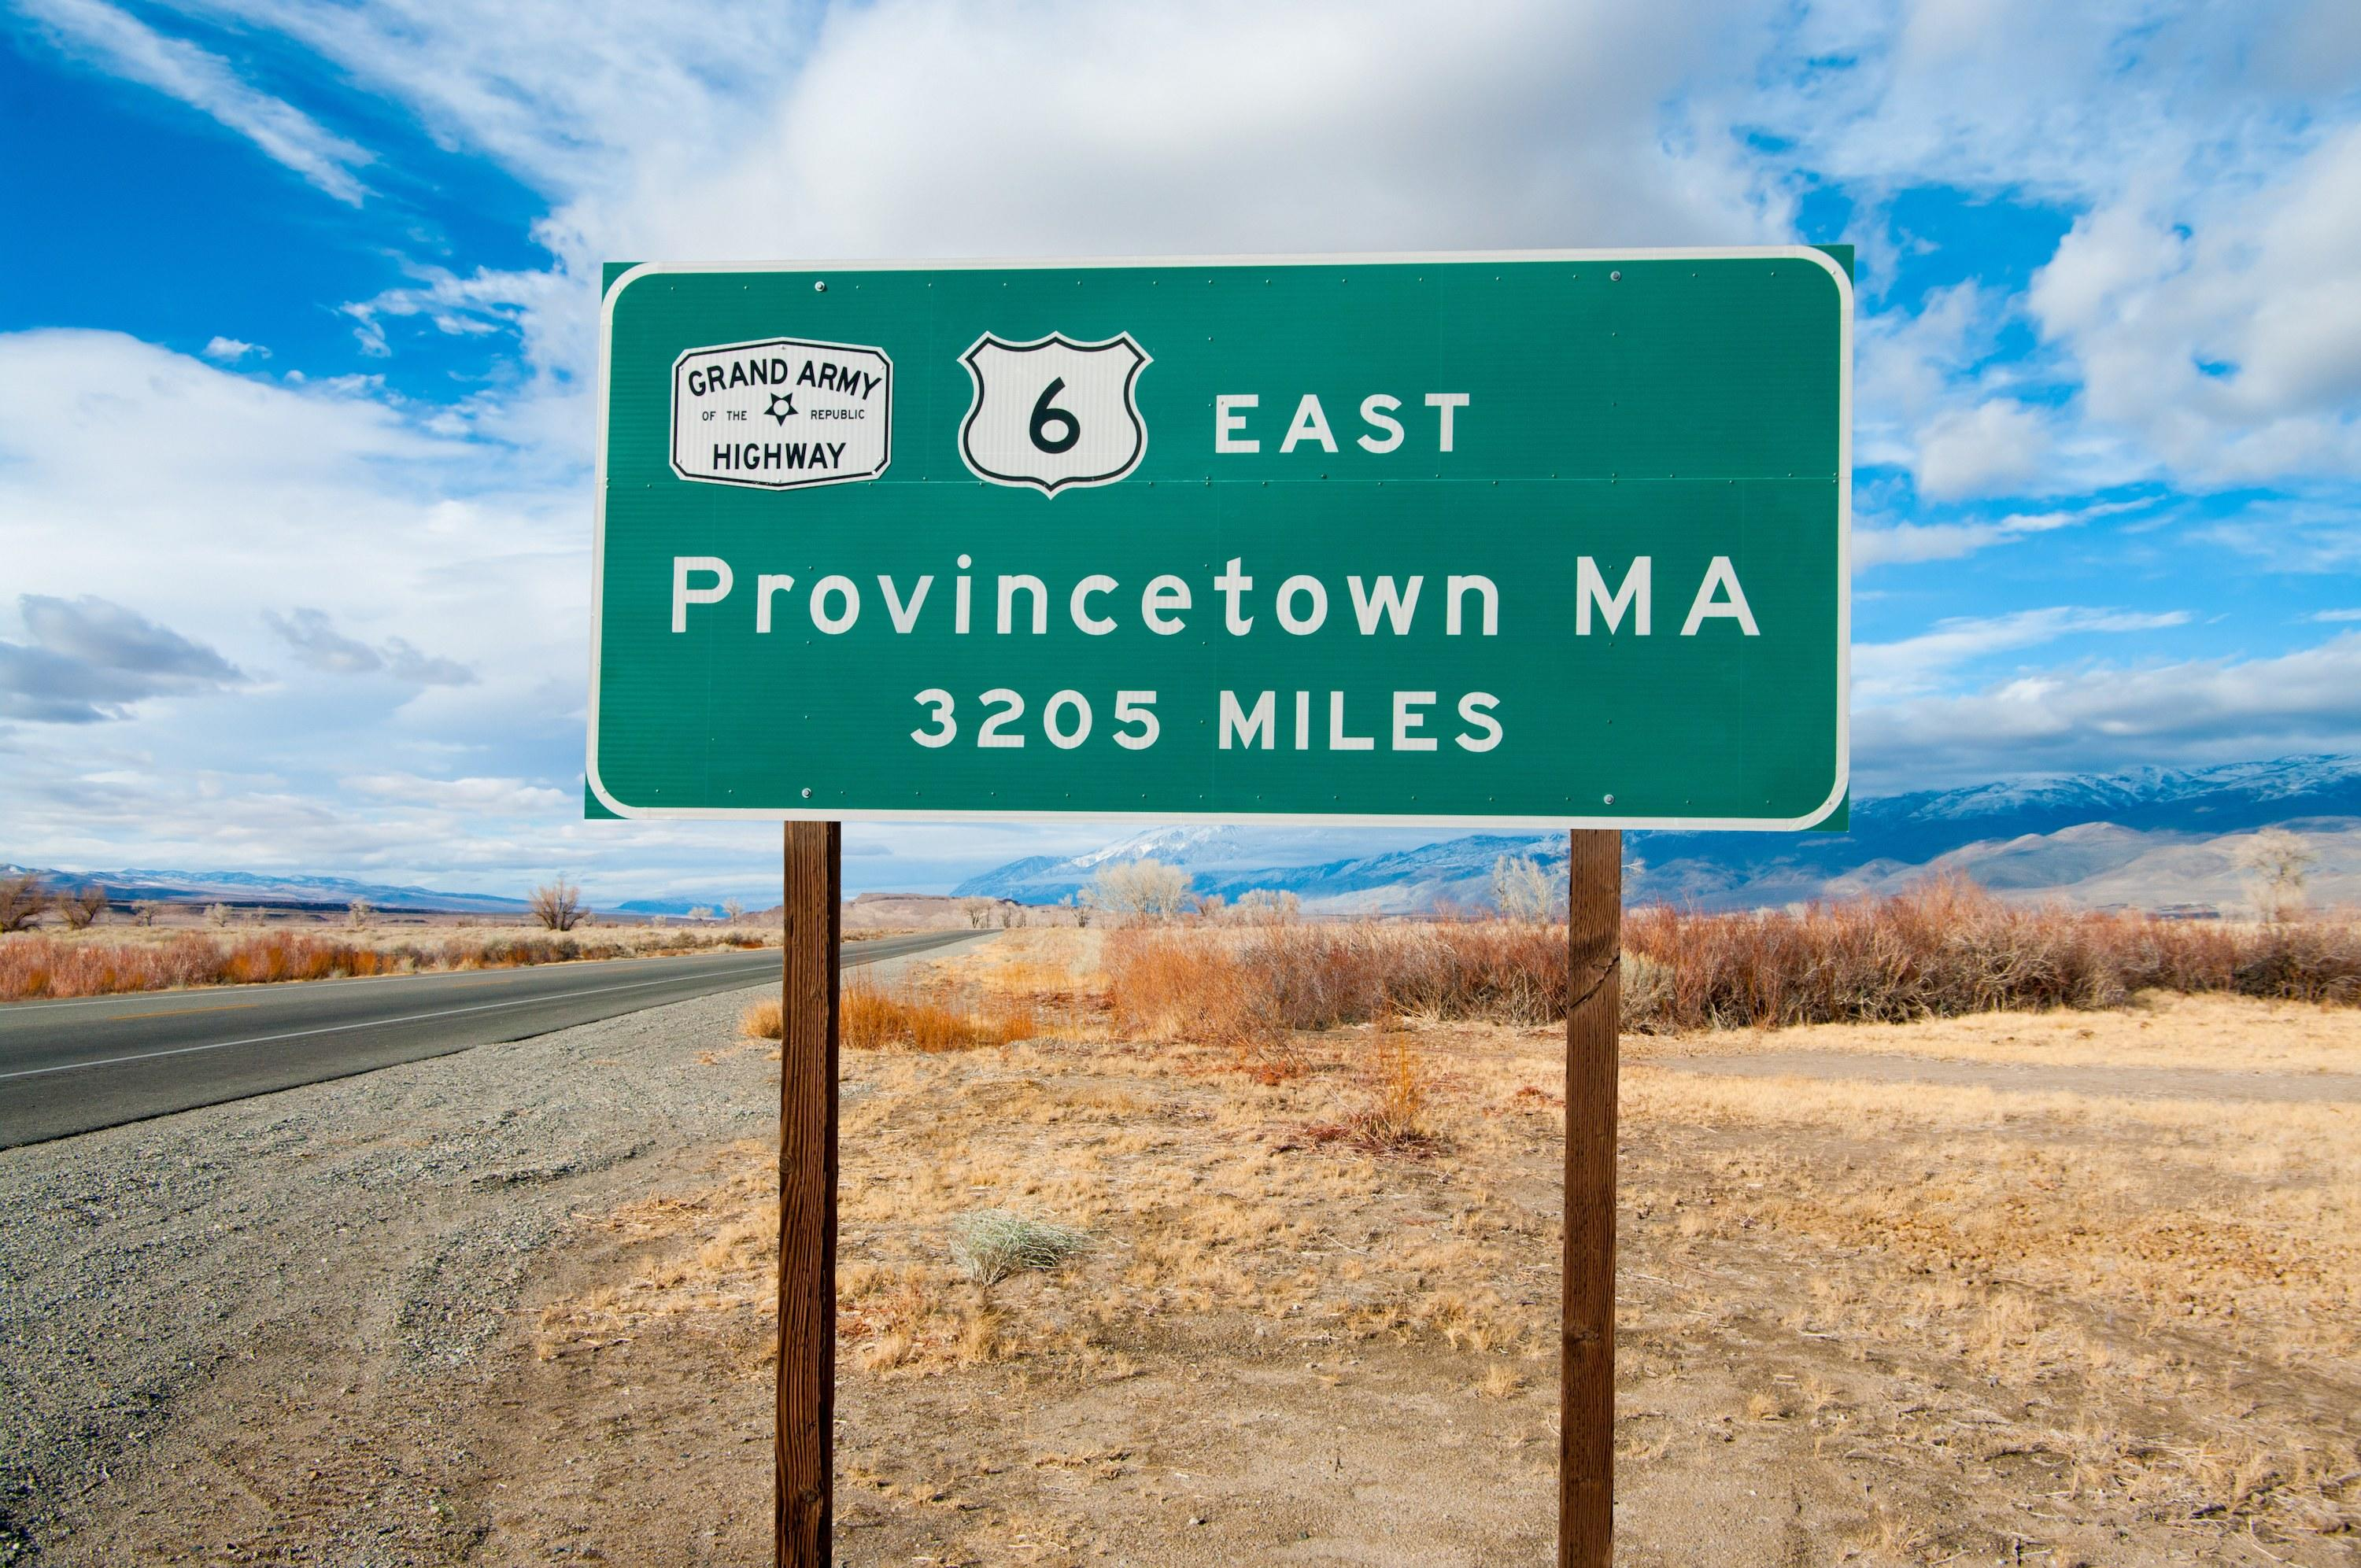 Almost running the entirety of the country, U.S. Route 6 begins in Provincetown, Massachusetts, and ends in Bishop, California (near the Nevada border). In total the highway stretches 3,199 miles, at one point going through the Loveland Pass, where it crosses the Continental Divide.